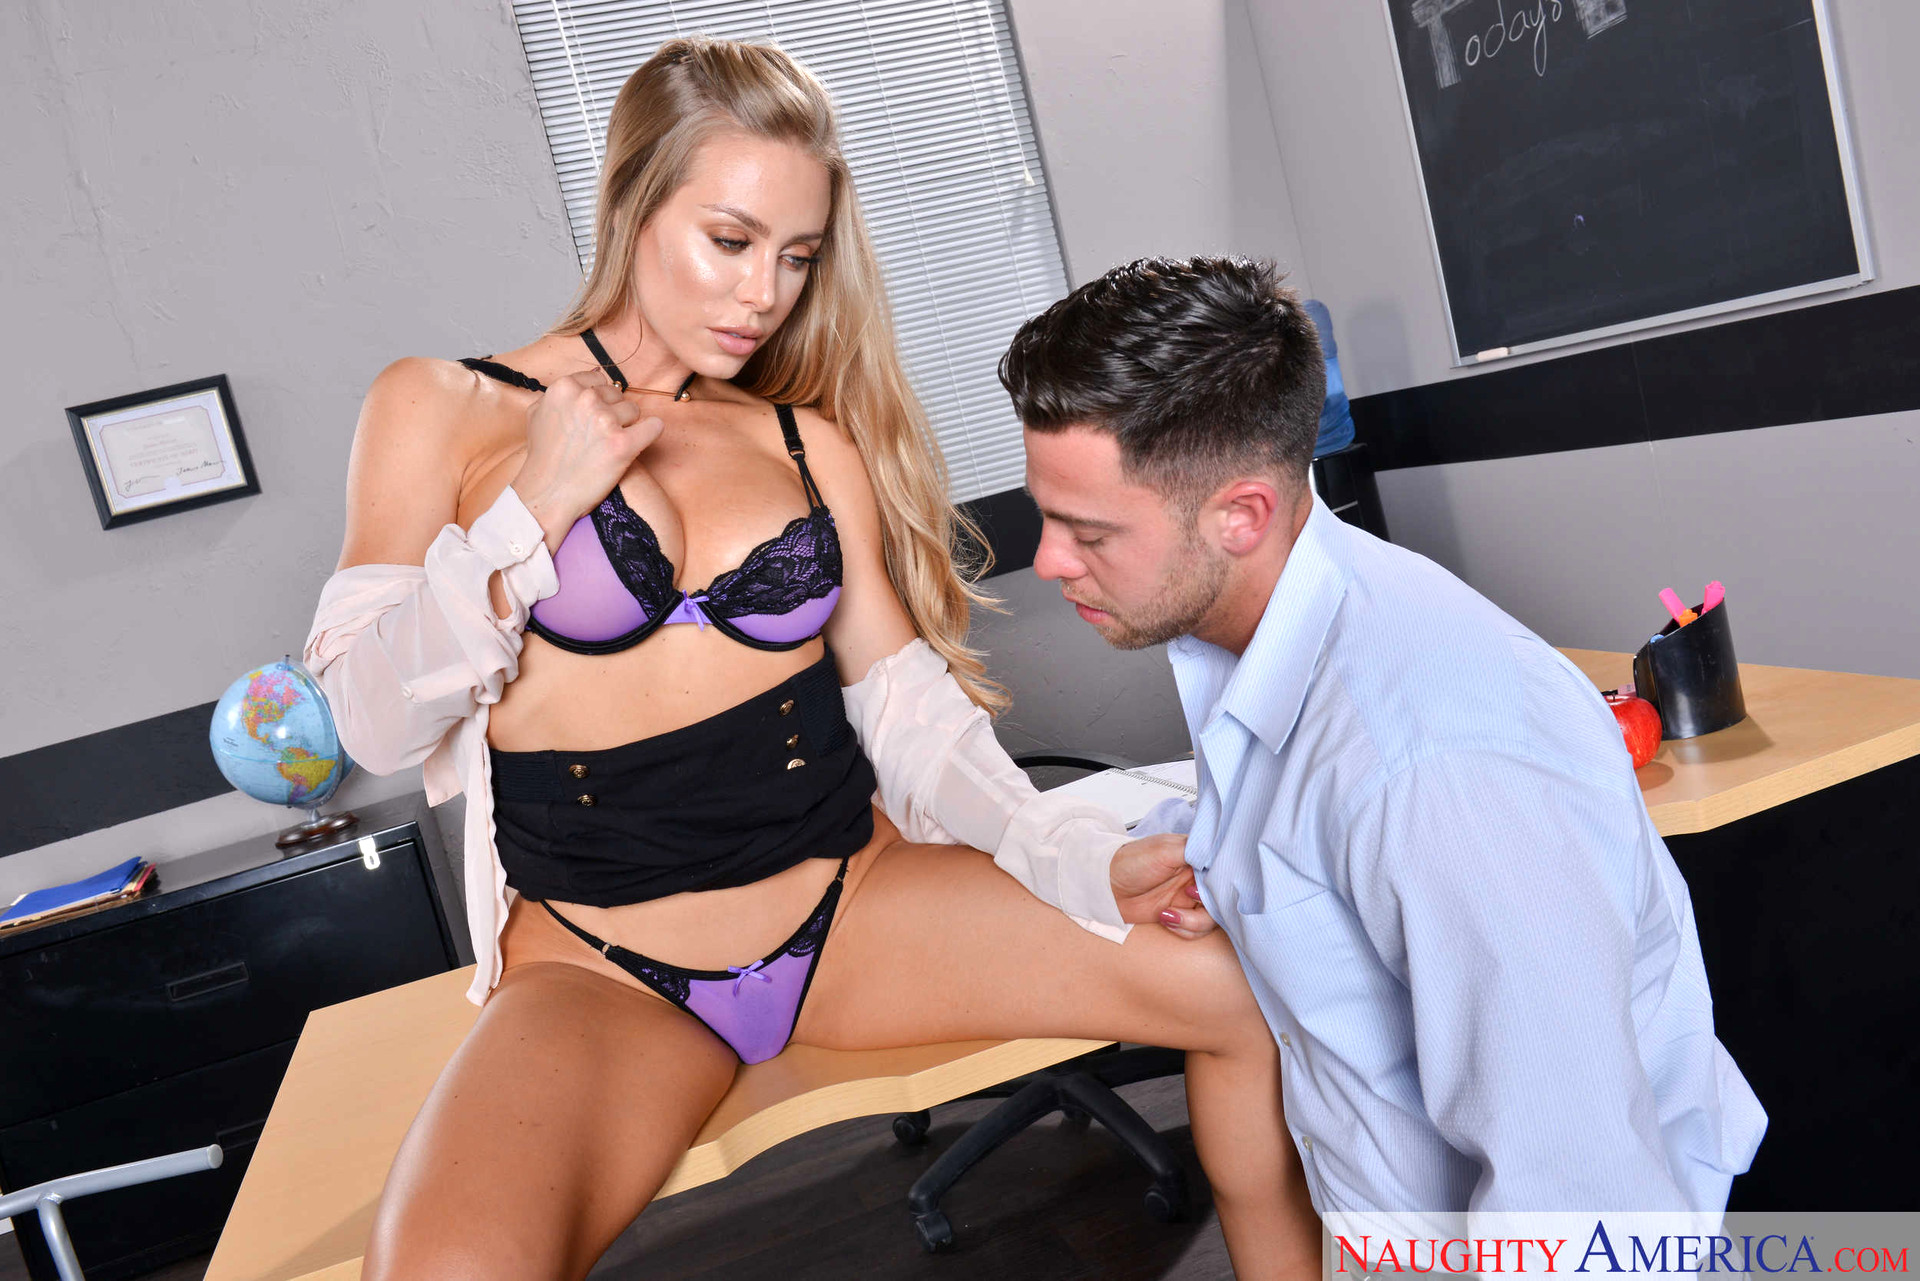 nicole aniston naughty america